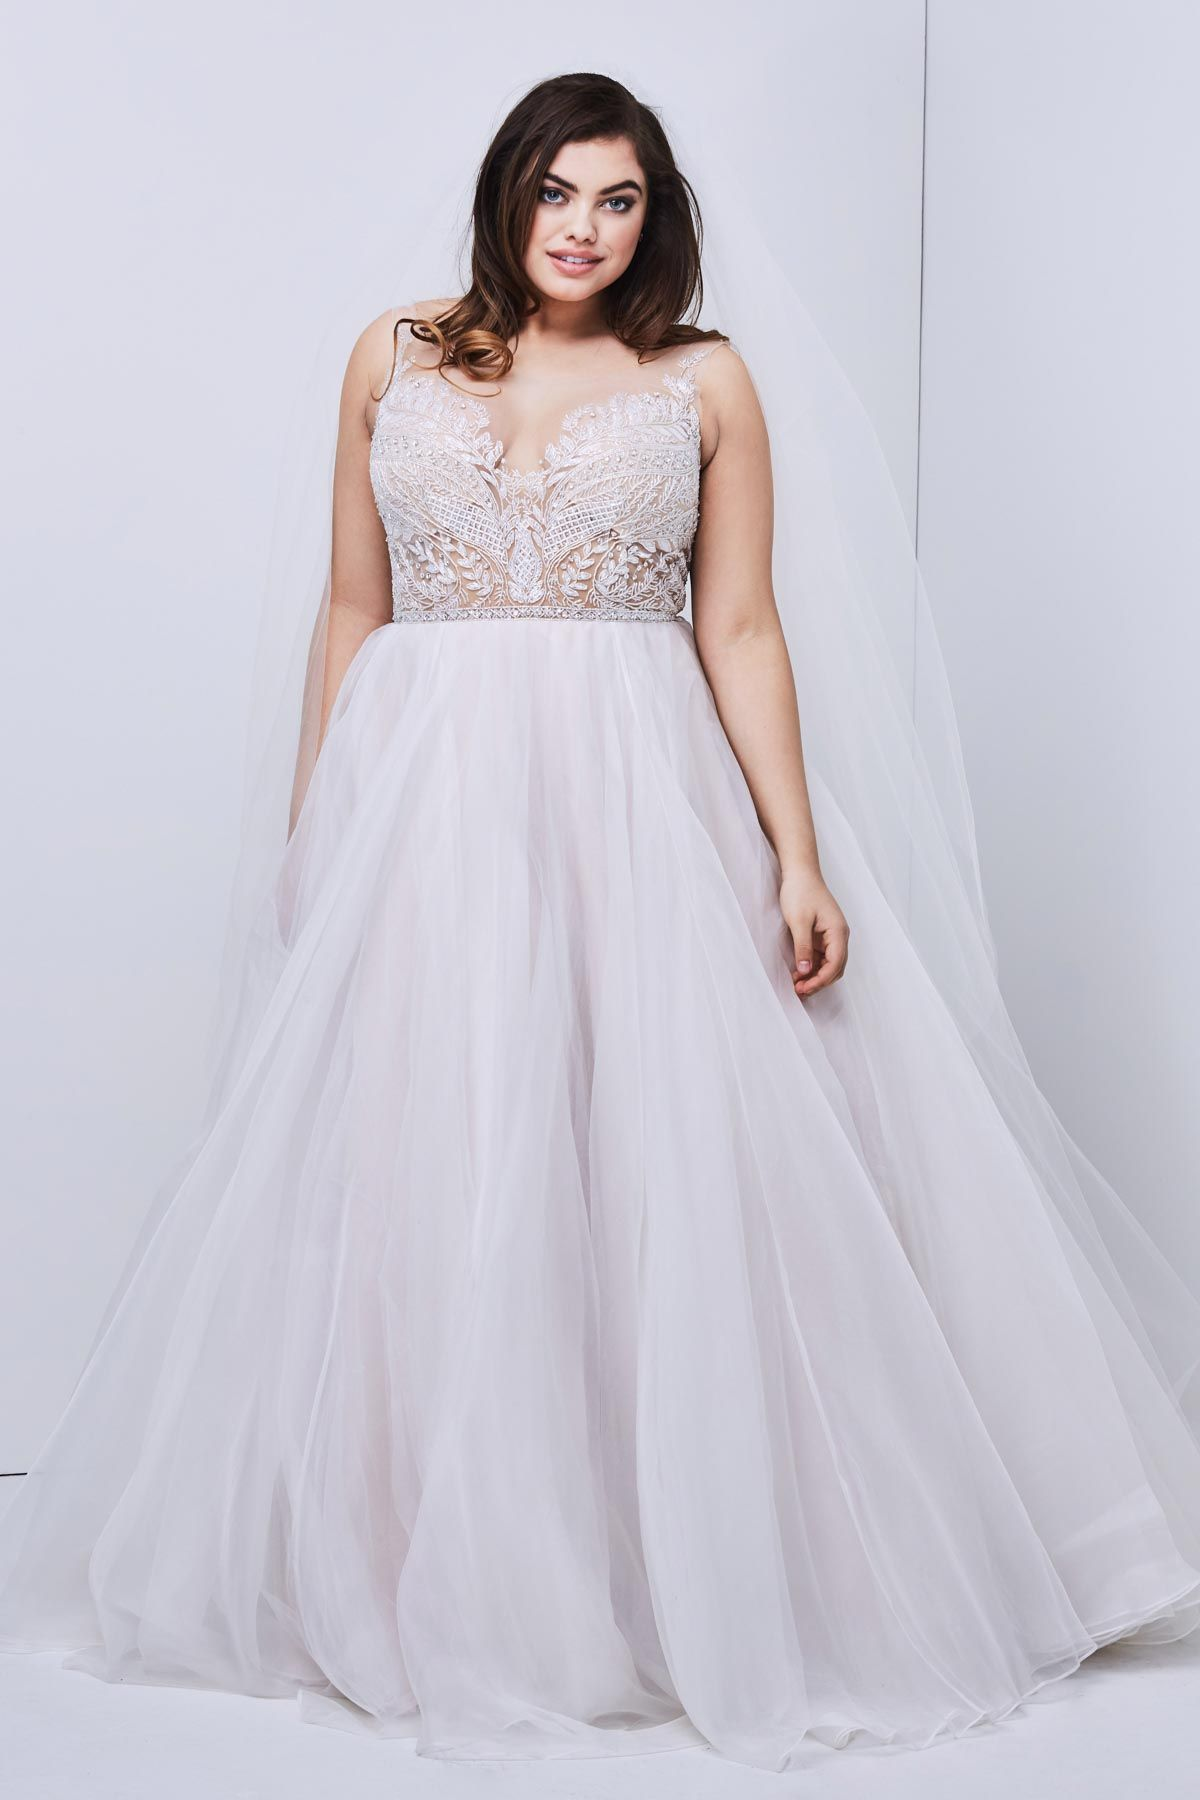 76872d969ef 38 Gorgeous Plus Size Wedding Dresses For Every Style And Budget